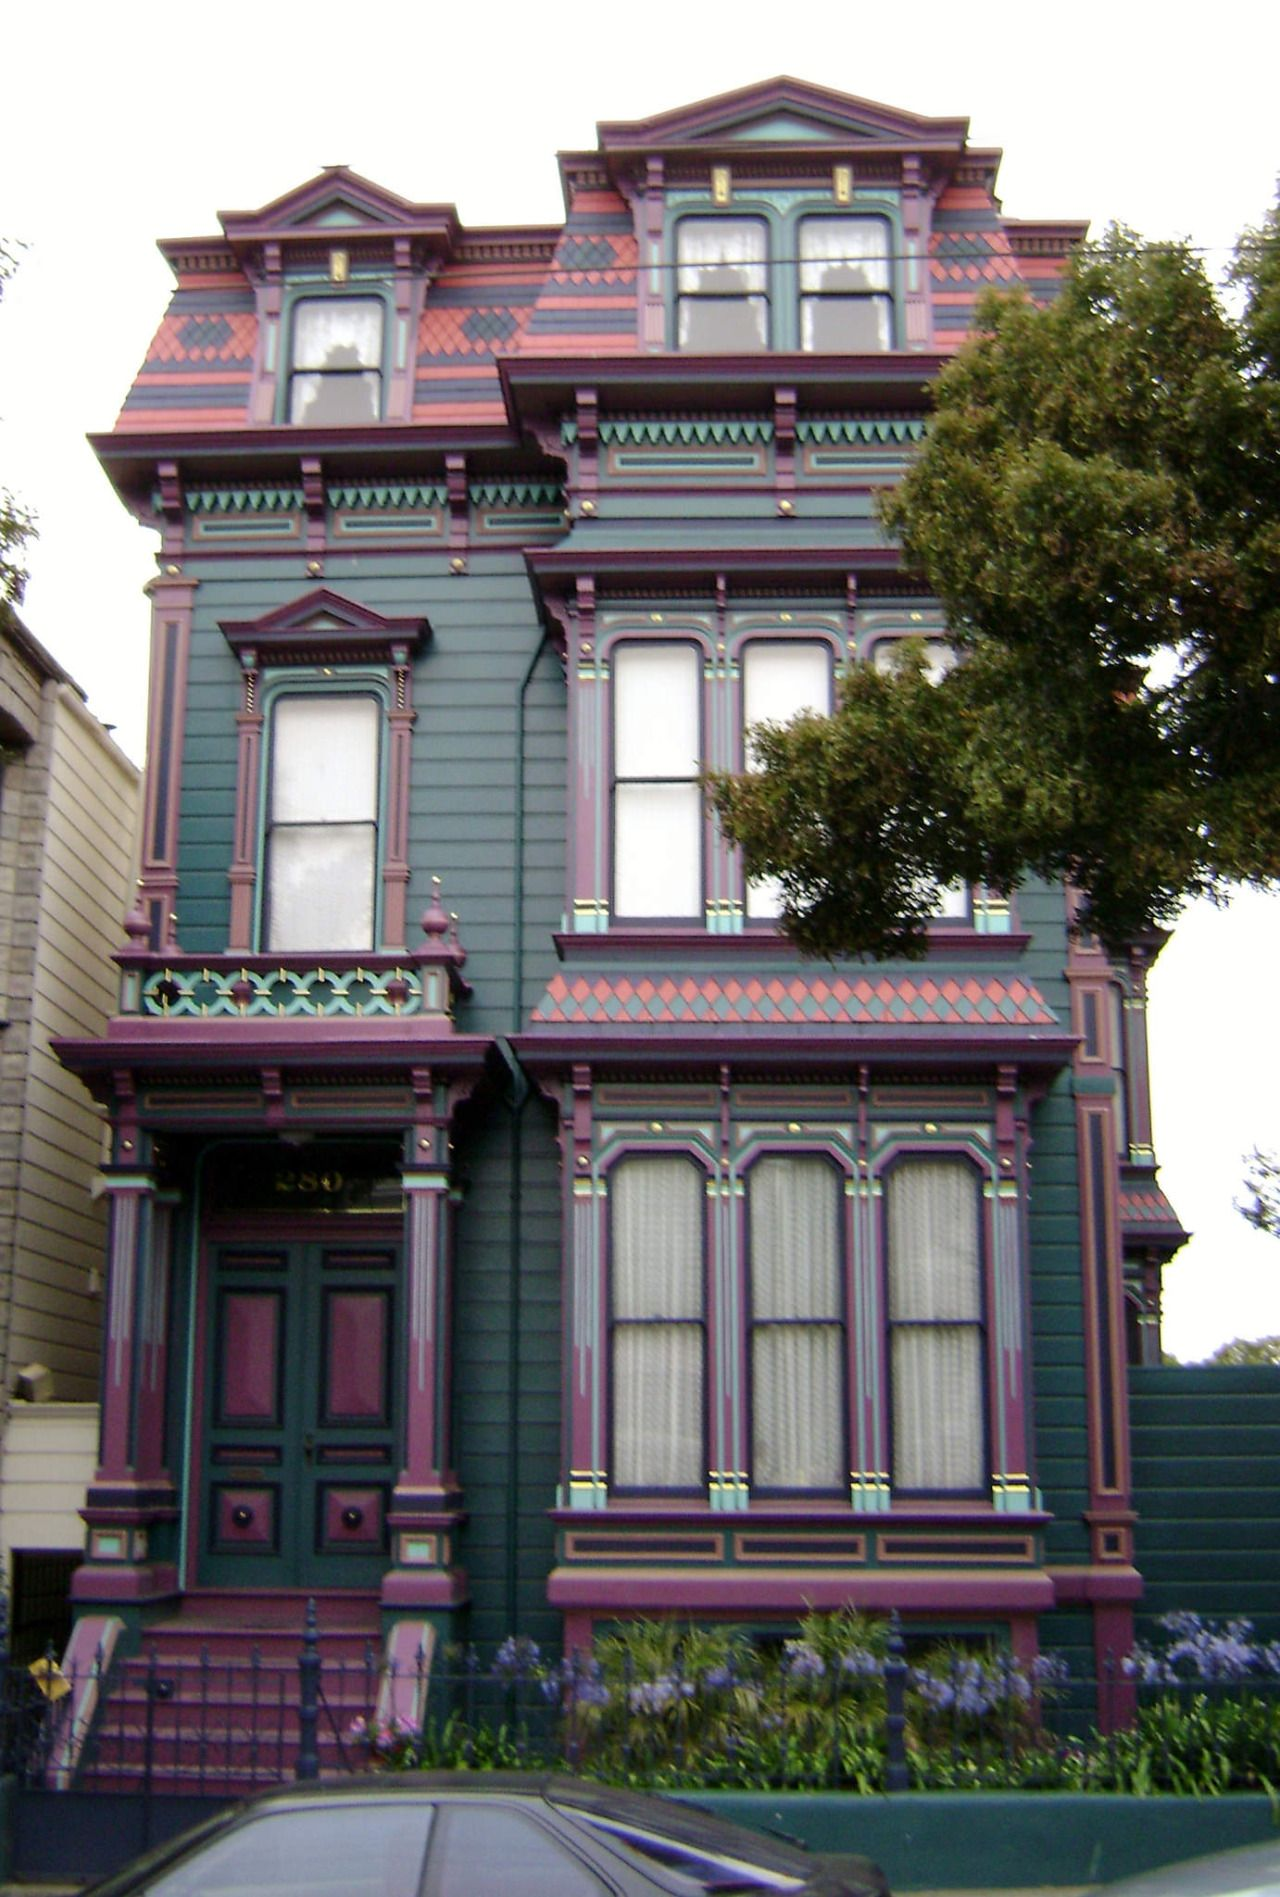 Modern Townhouse Townhouse Designs San Francisco: San Francisco Victorians By Larry Syverson Via Flickr: Victorian Homes In The Eastlake/Stick